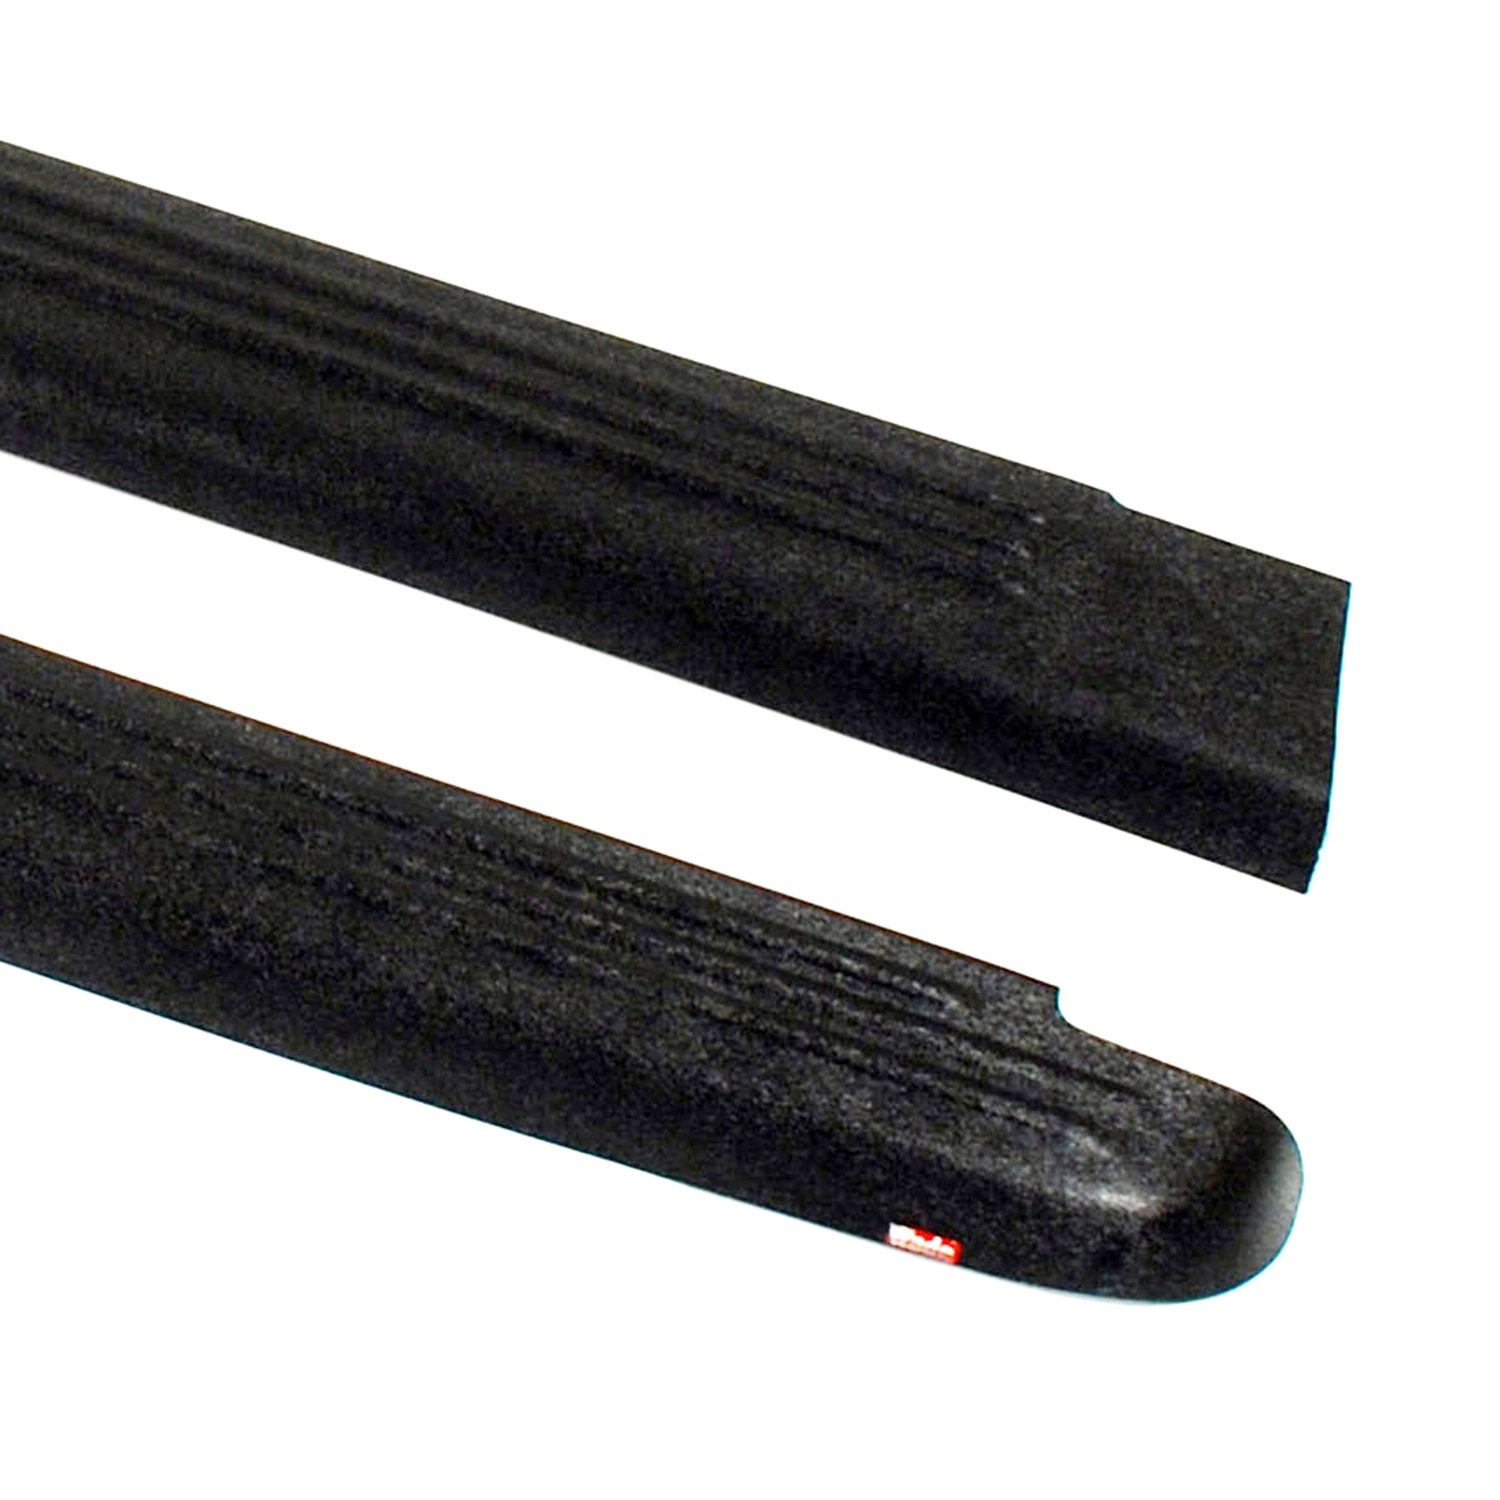 Wade 72-00151 Truck Bed Rail Caps Black Ribbed Finish without Stake Holes for 1999-2007 Silverado & Sierra 1500 2500 (Classic only) with 6.5ft bed (Set of 2)